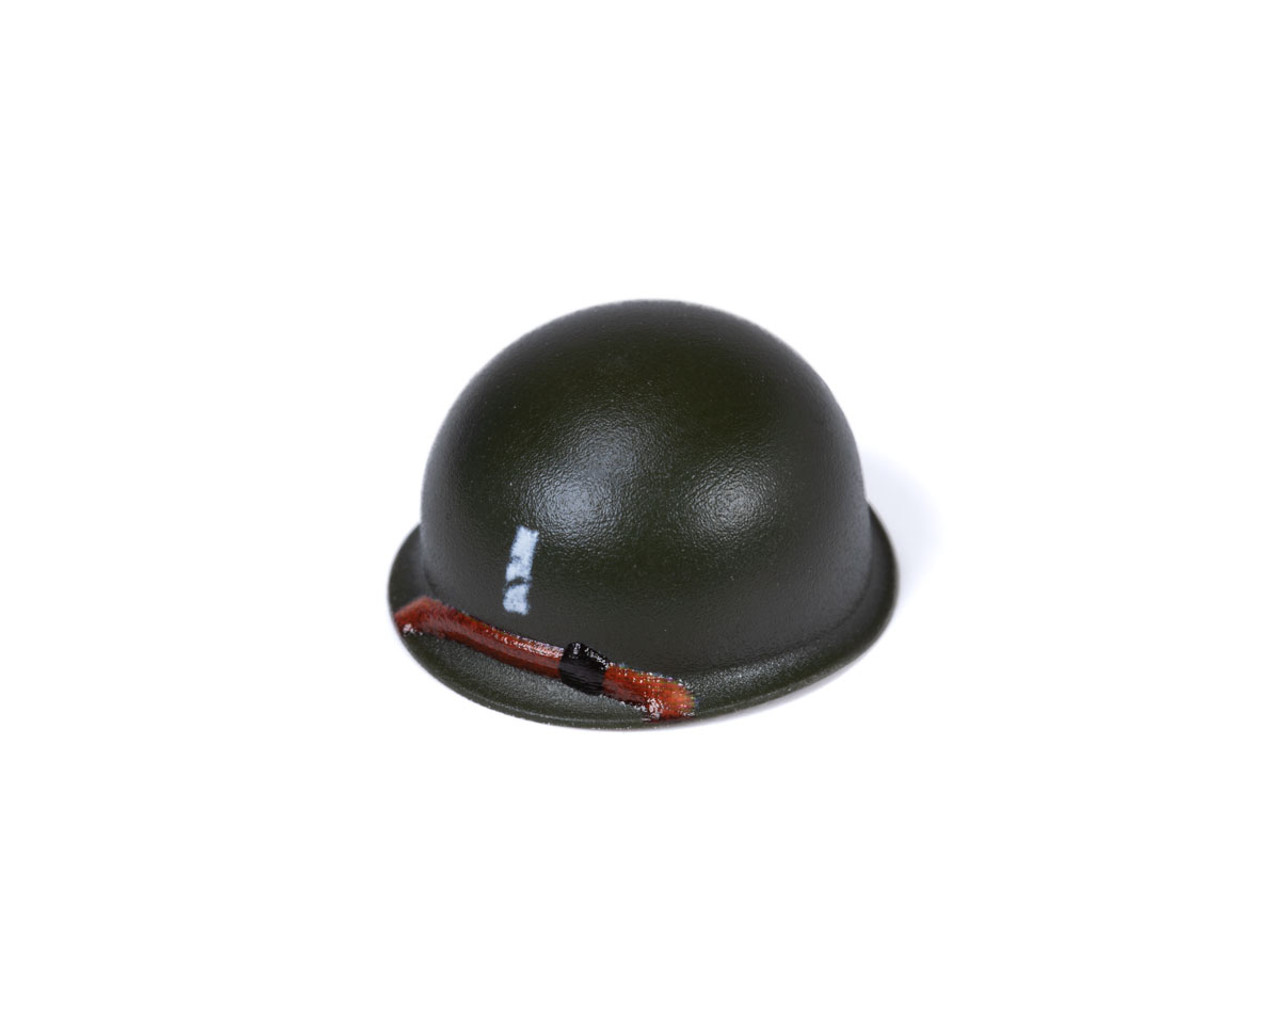 BrickArms® M1 Steel Pot Helmet - 1st Lieutenant Rank